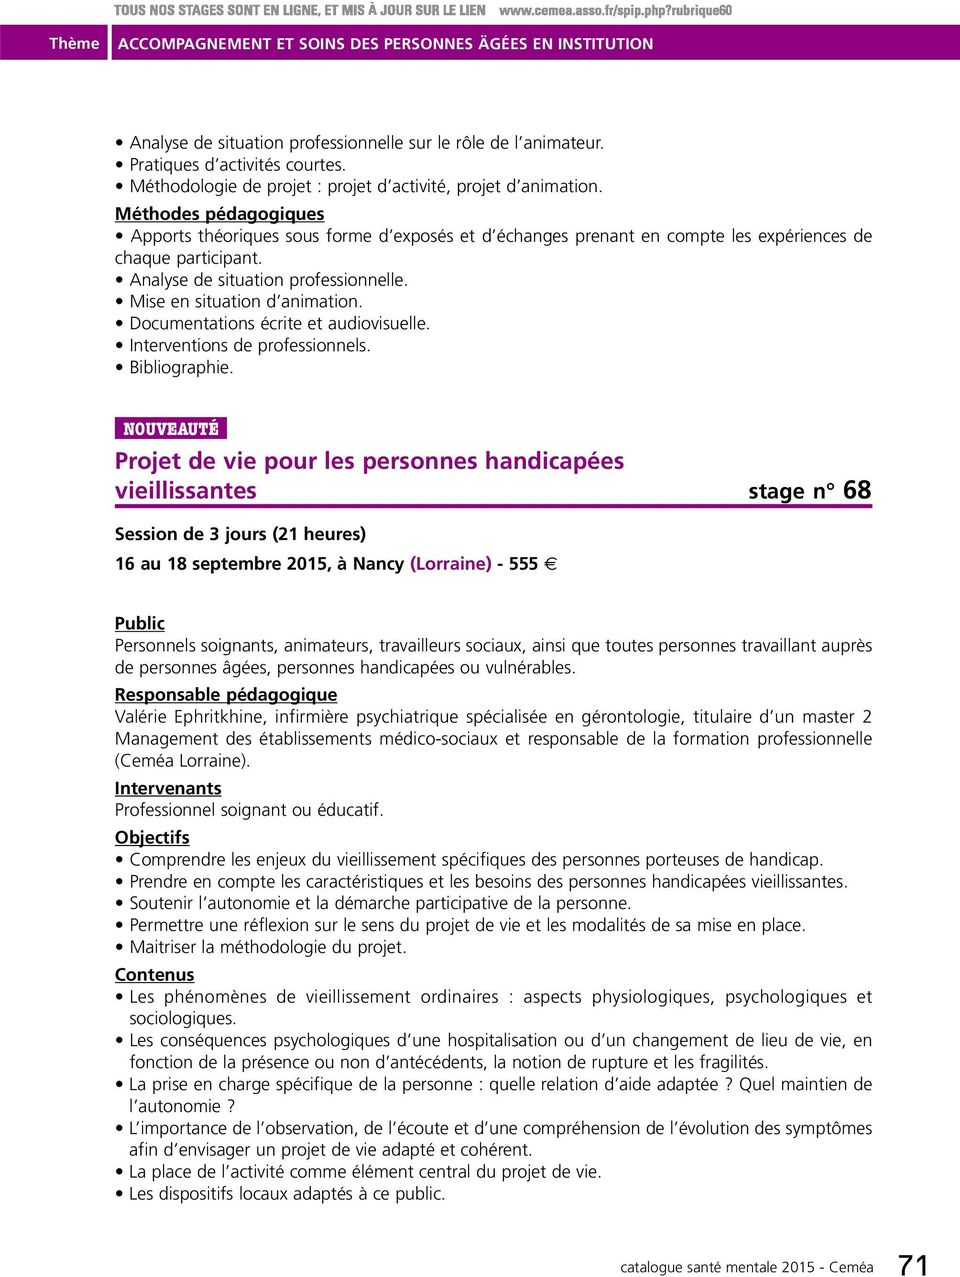 Documentations écrite et audiovisuelle. Interventions de professionnels. Bibliographie.